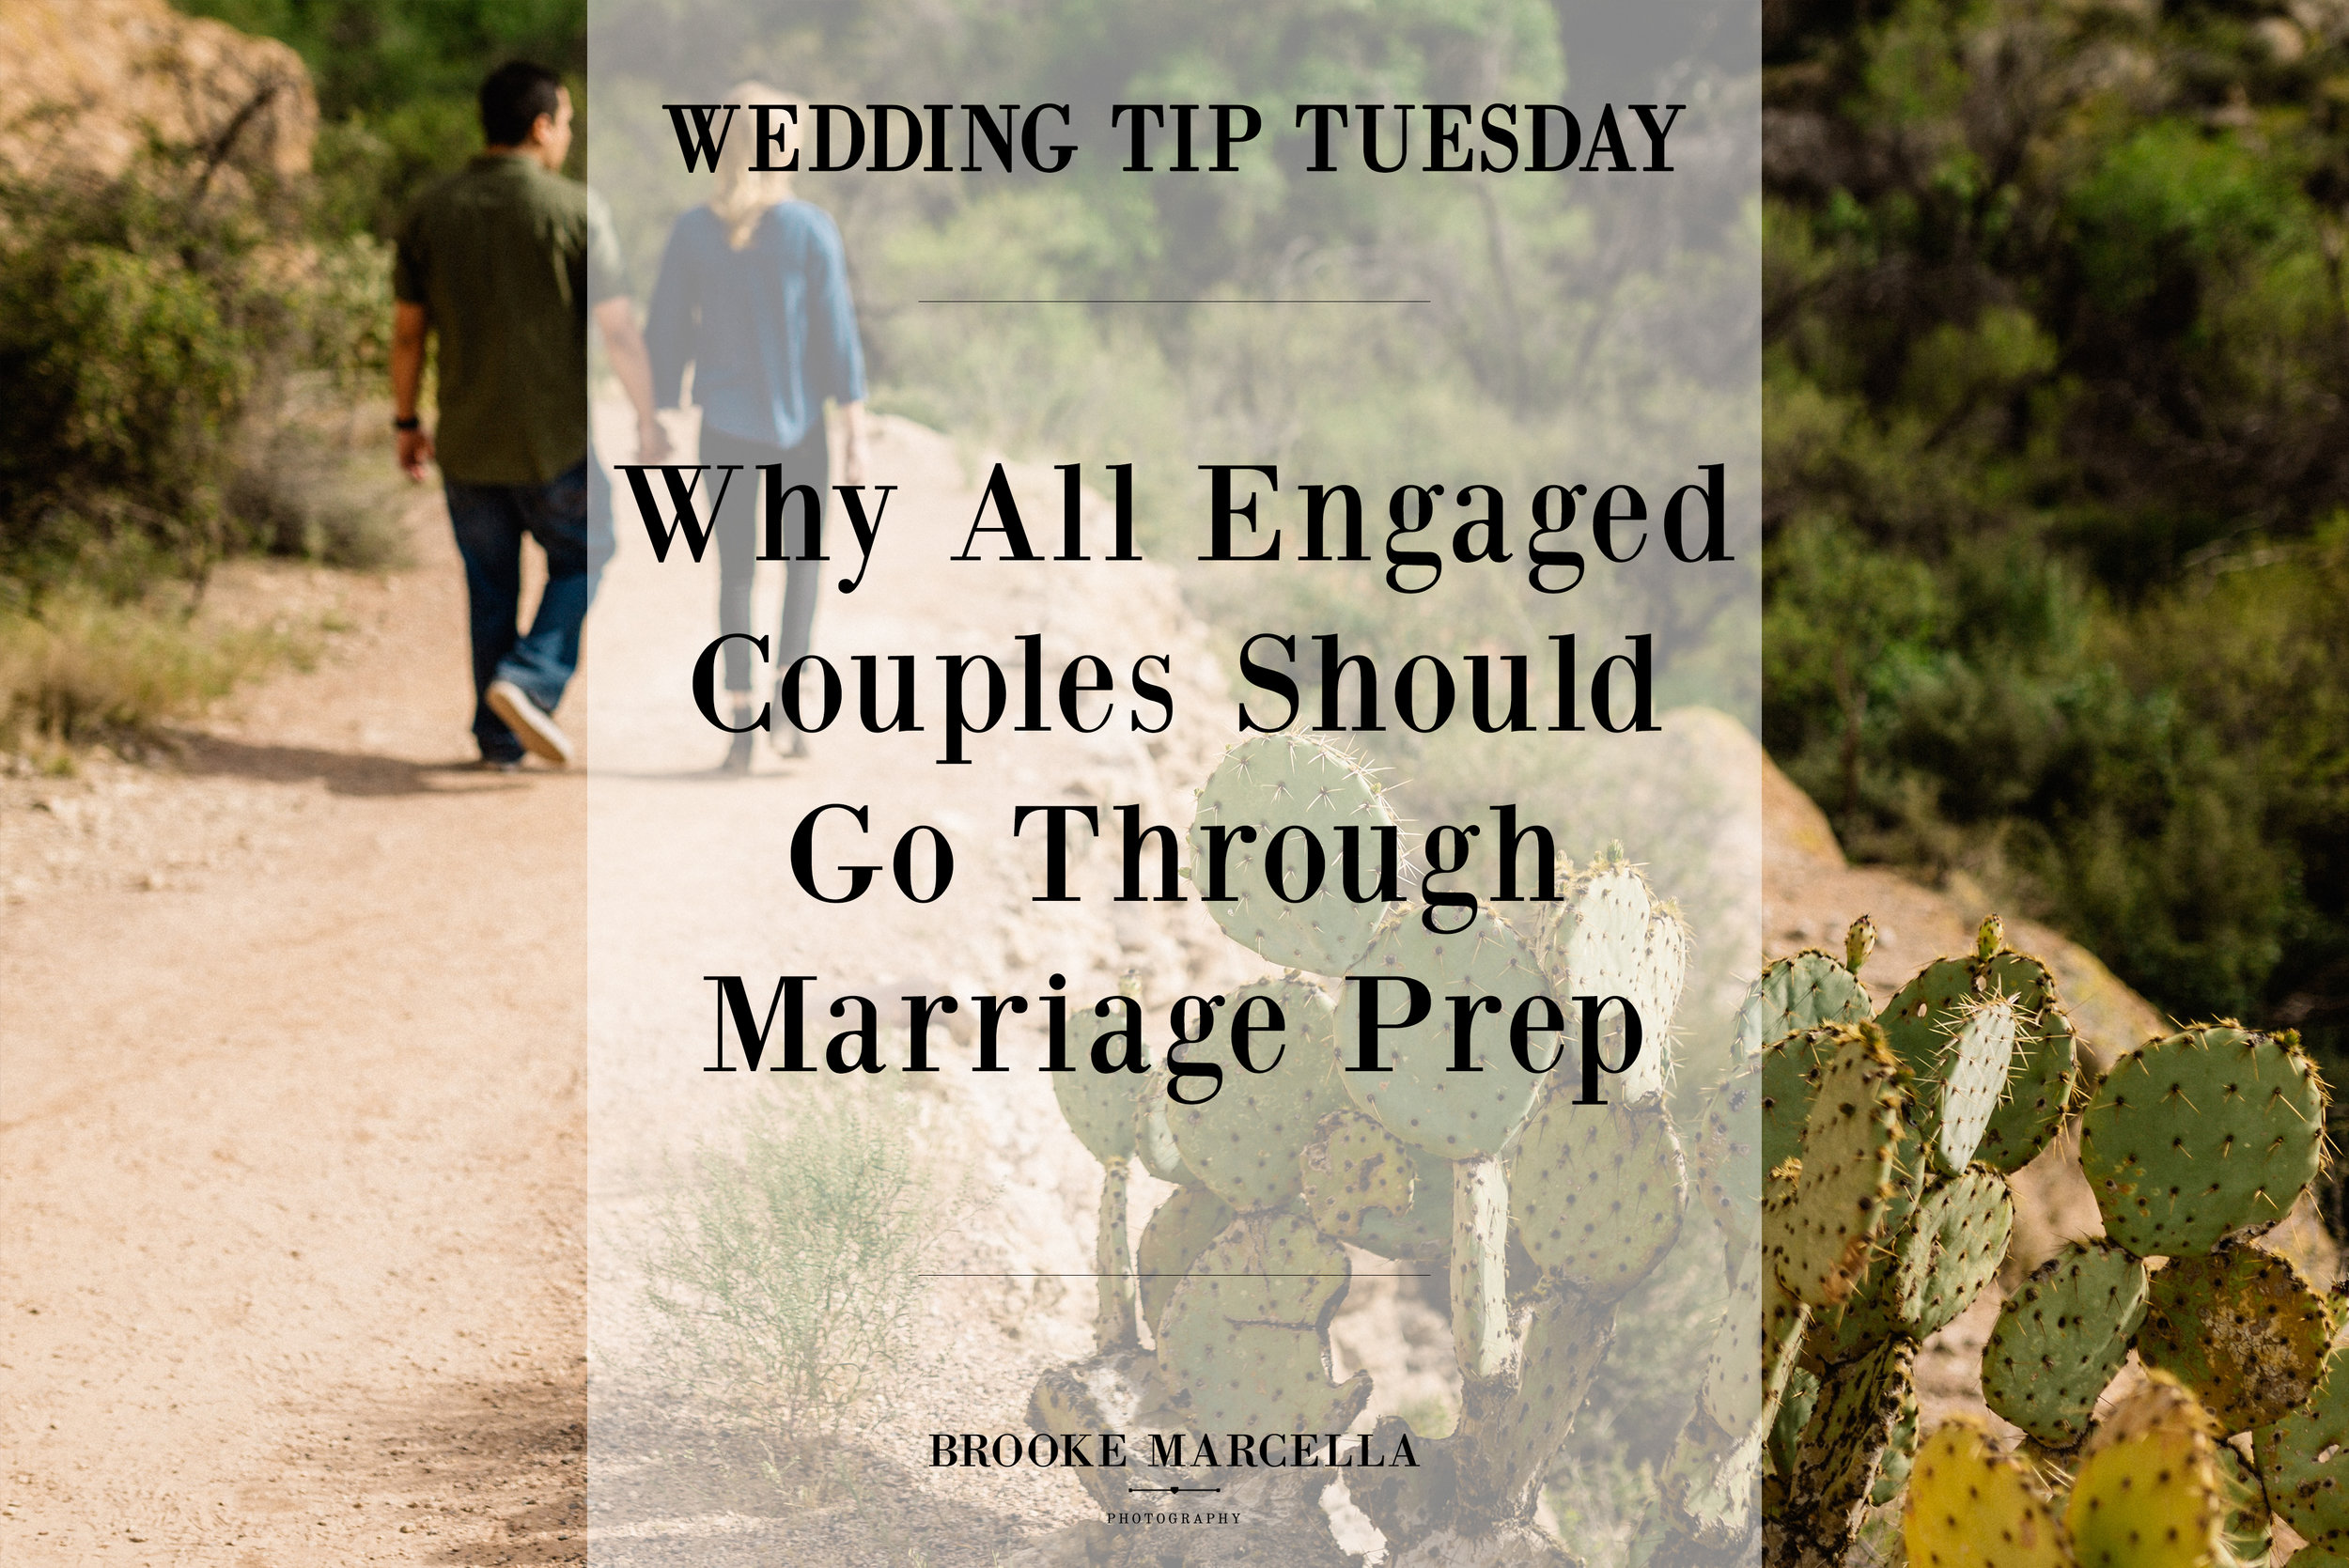 Why all engaged couples should go through marriage prep